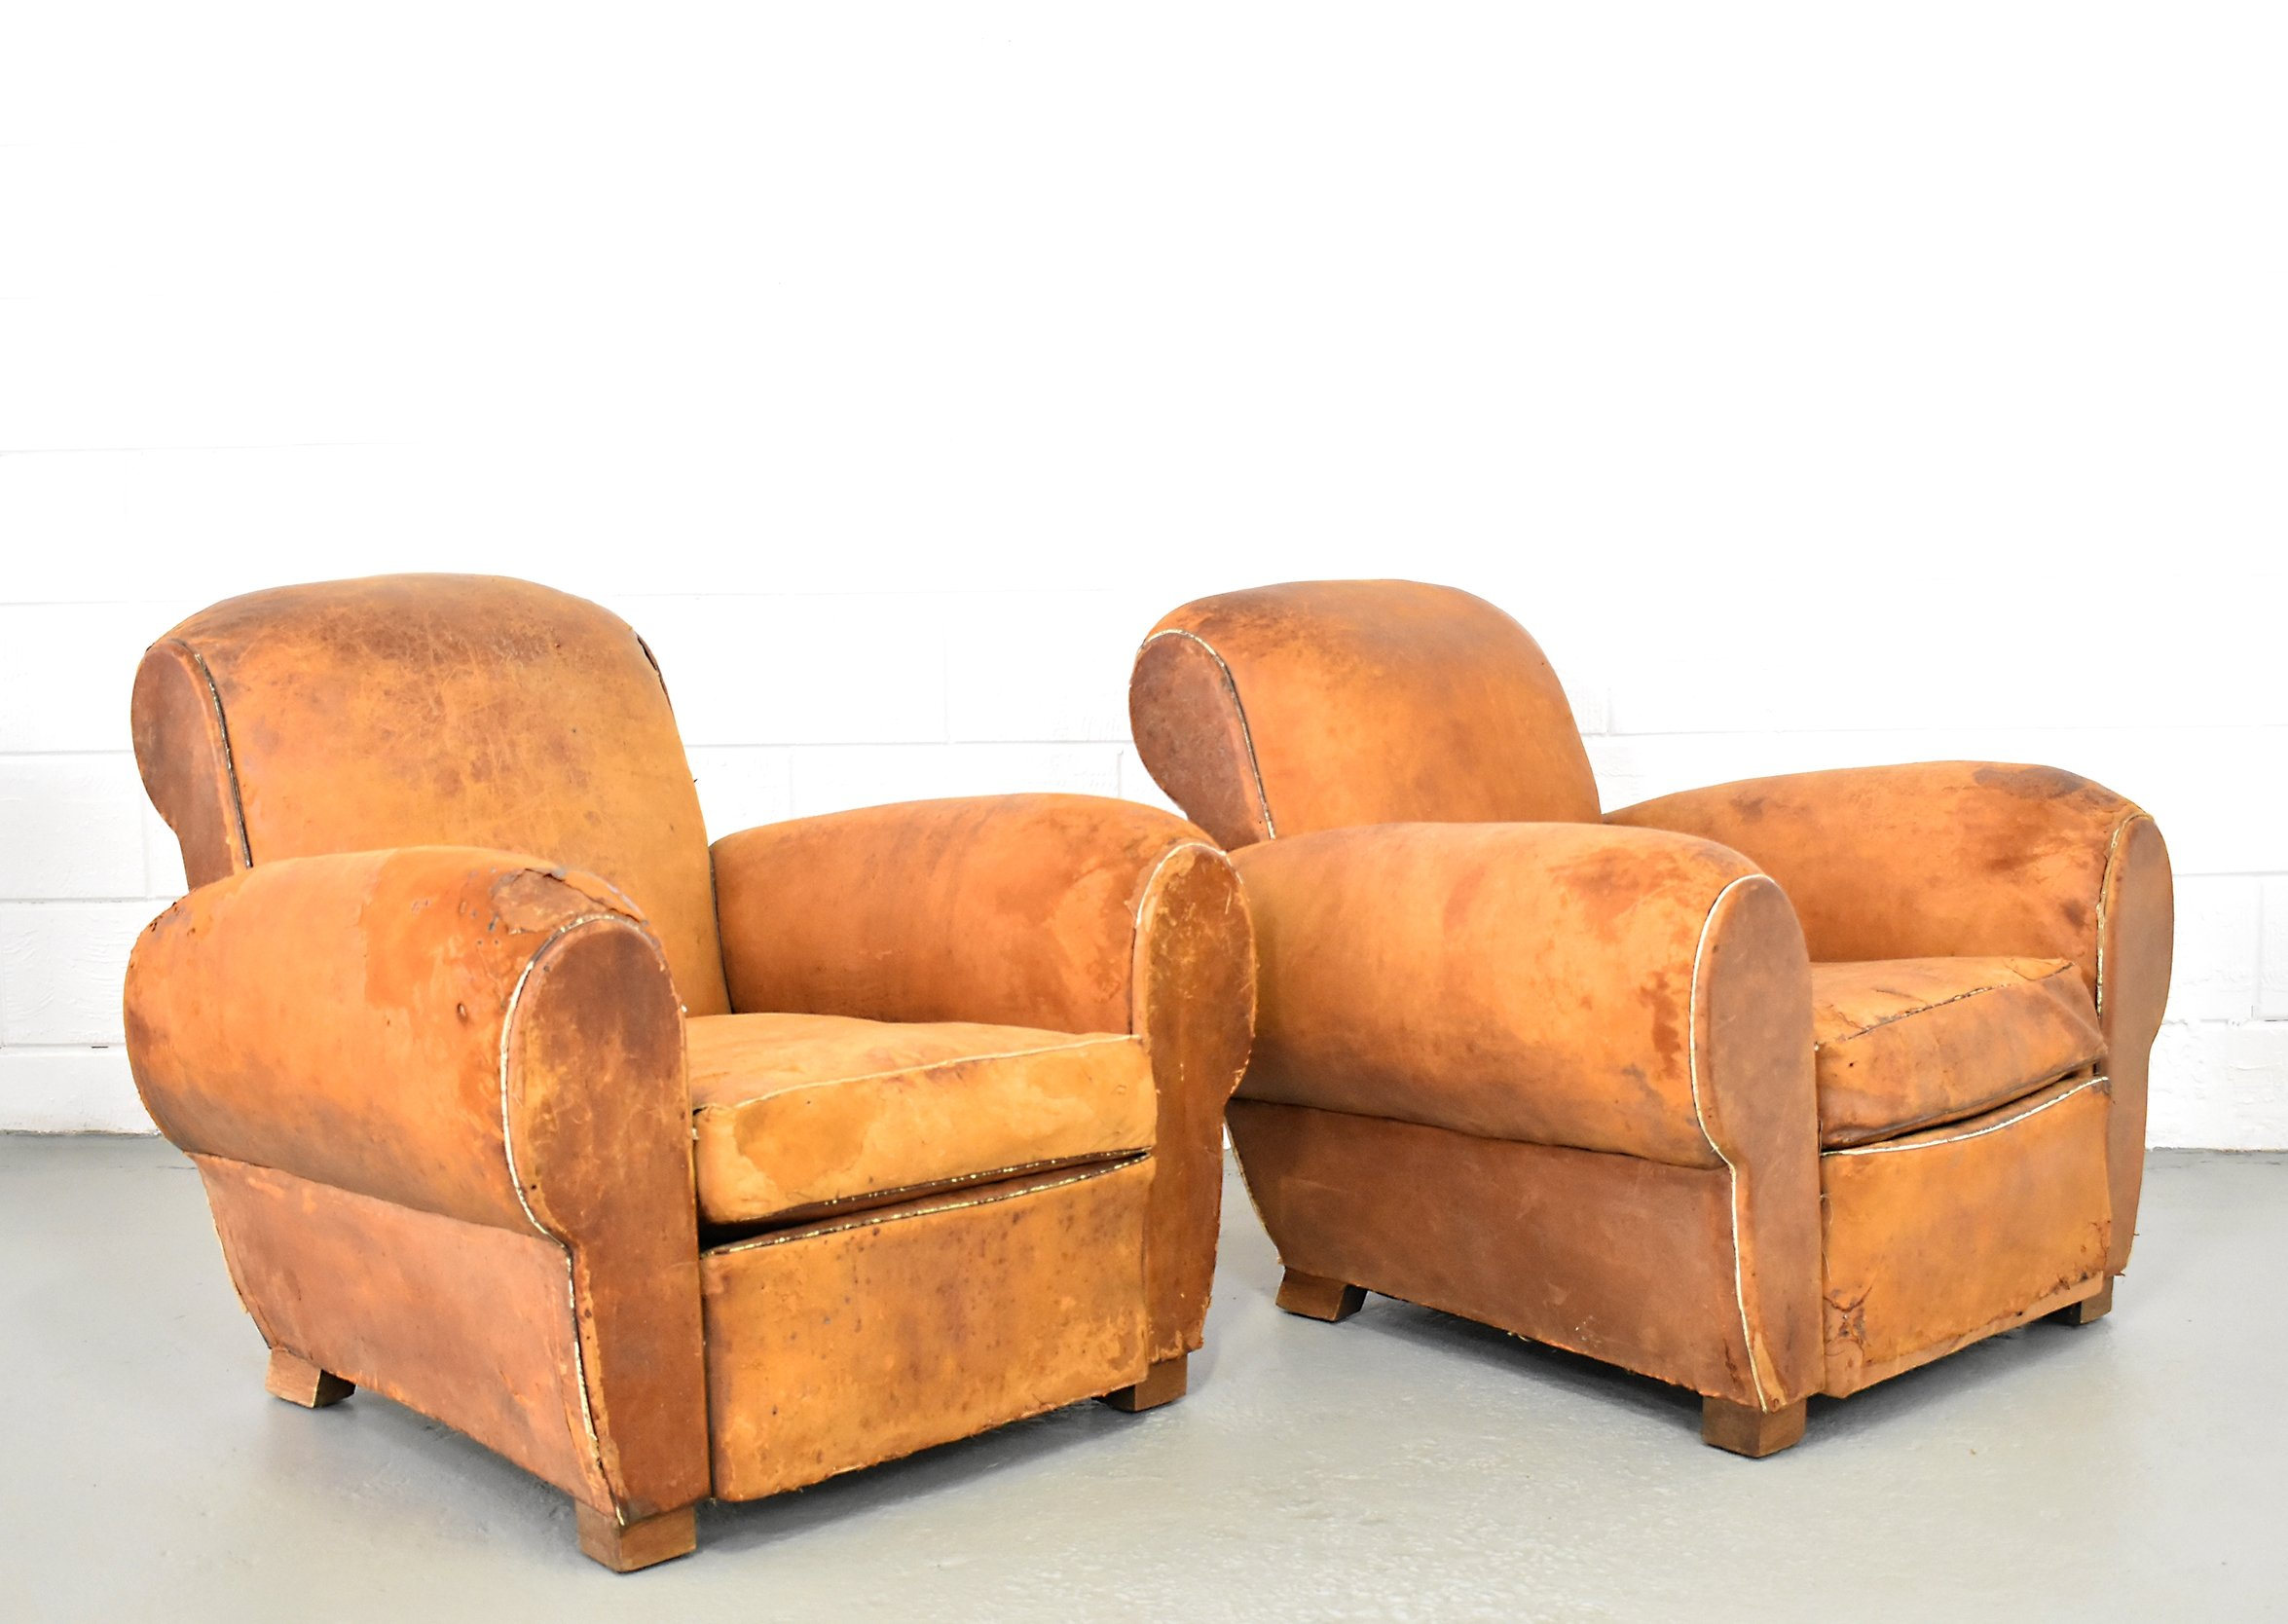 Set Of 2 French Club Chairs, 1920s